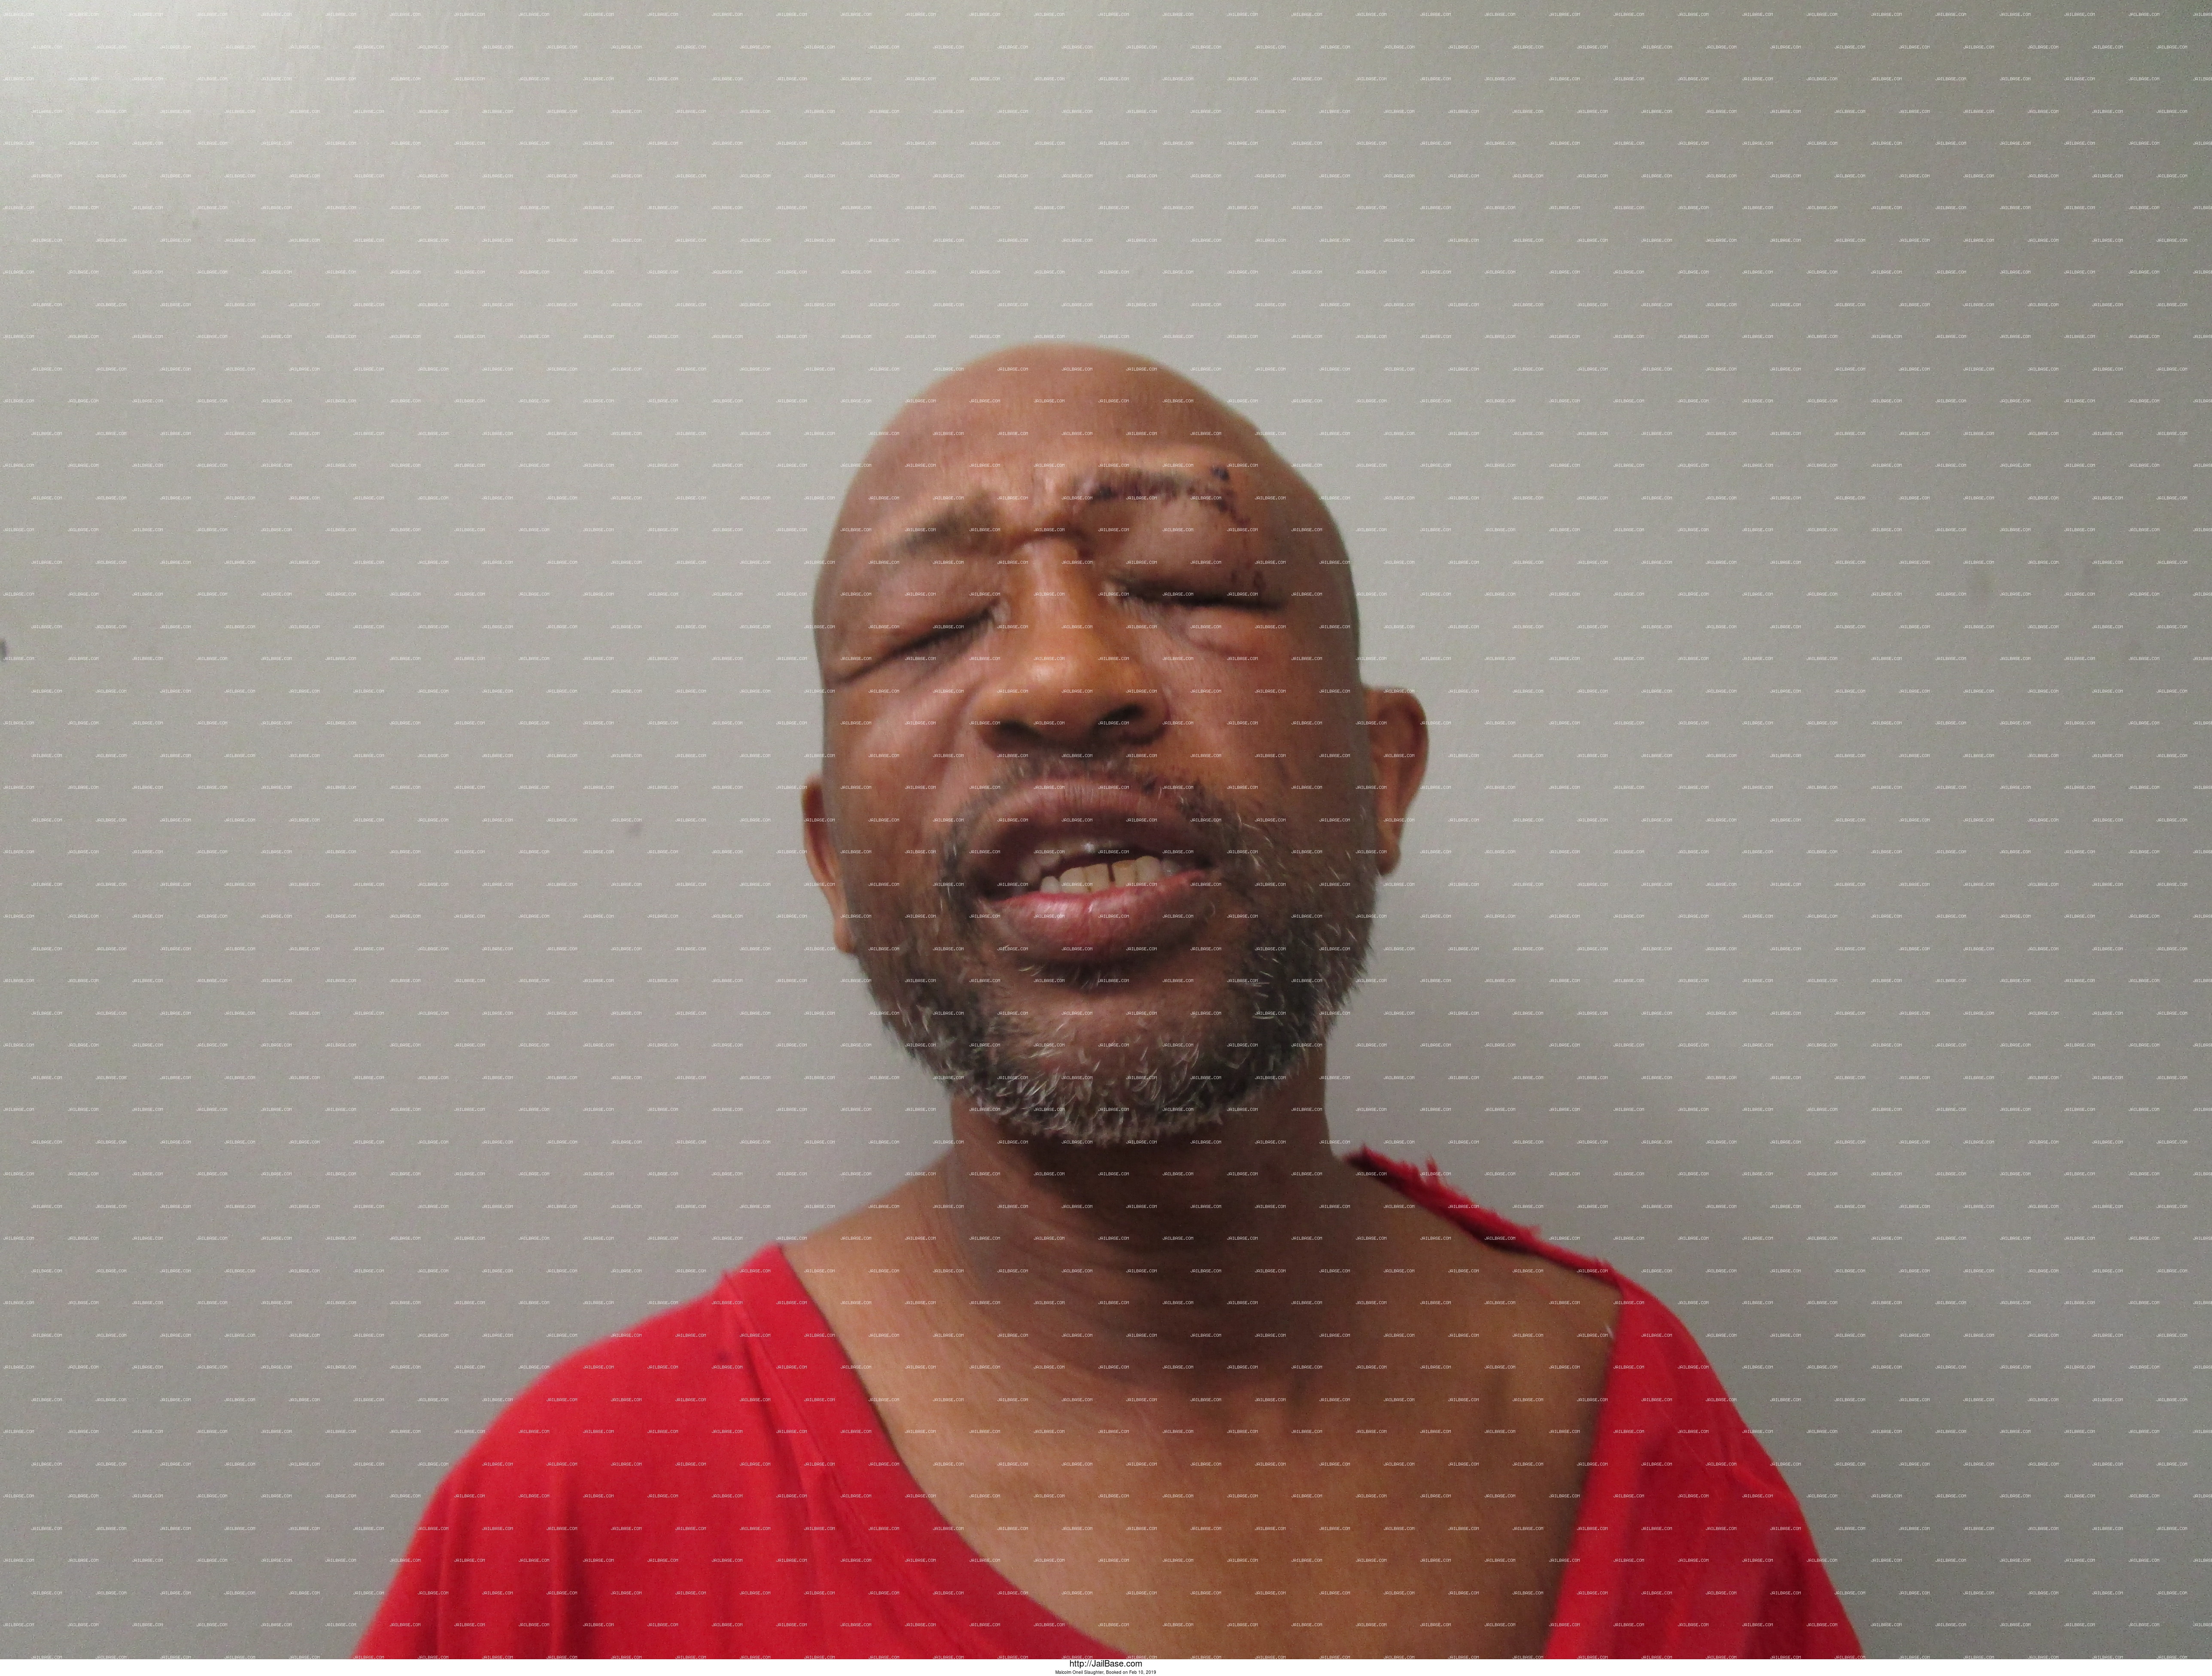 MALCOLM ONEIL SLAUGHTER mugshot picture